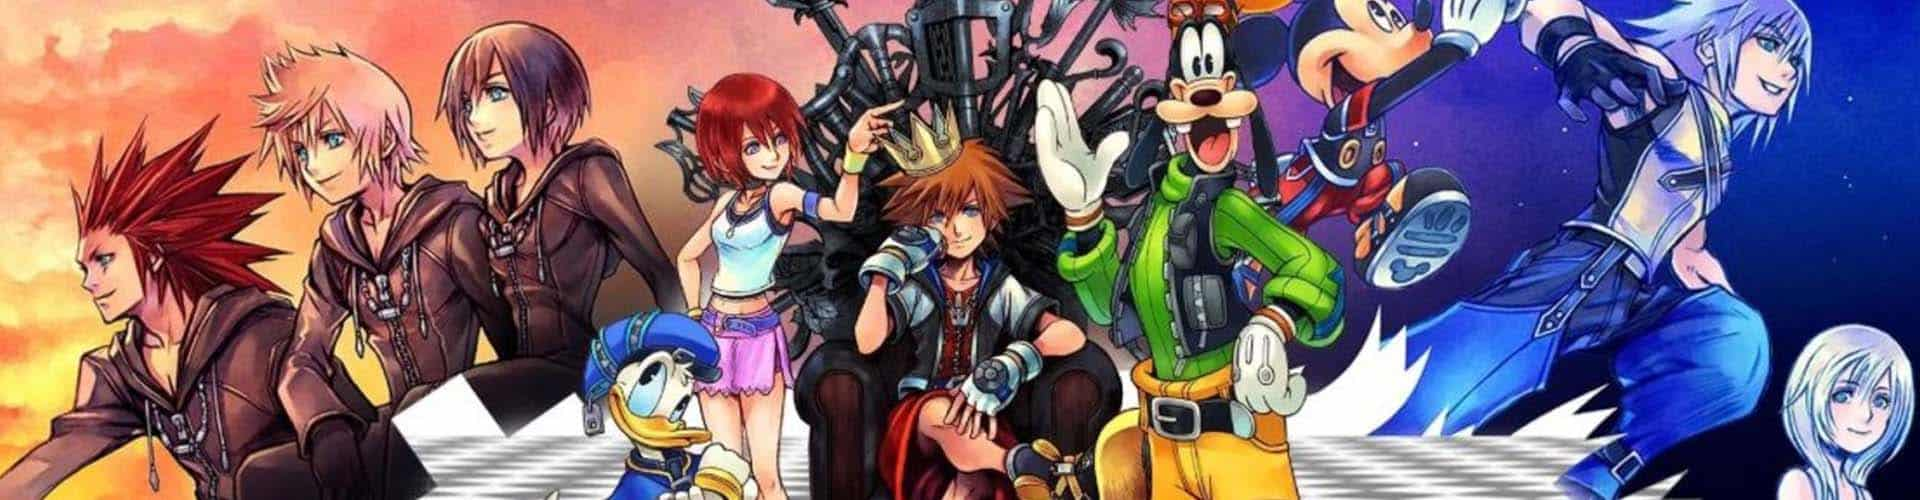 Kingdom Hearts 3 Keyblades (Ranked From Best to Worst)